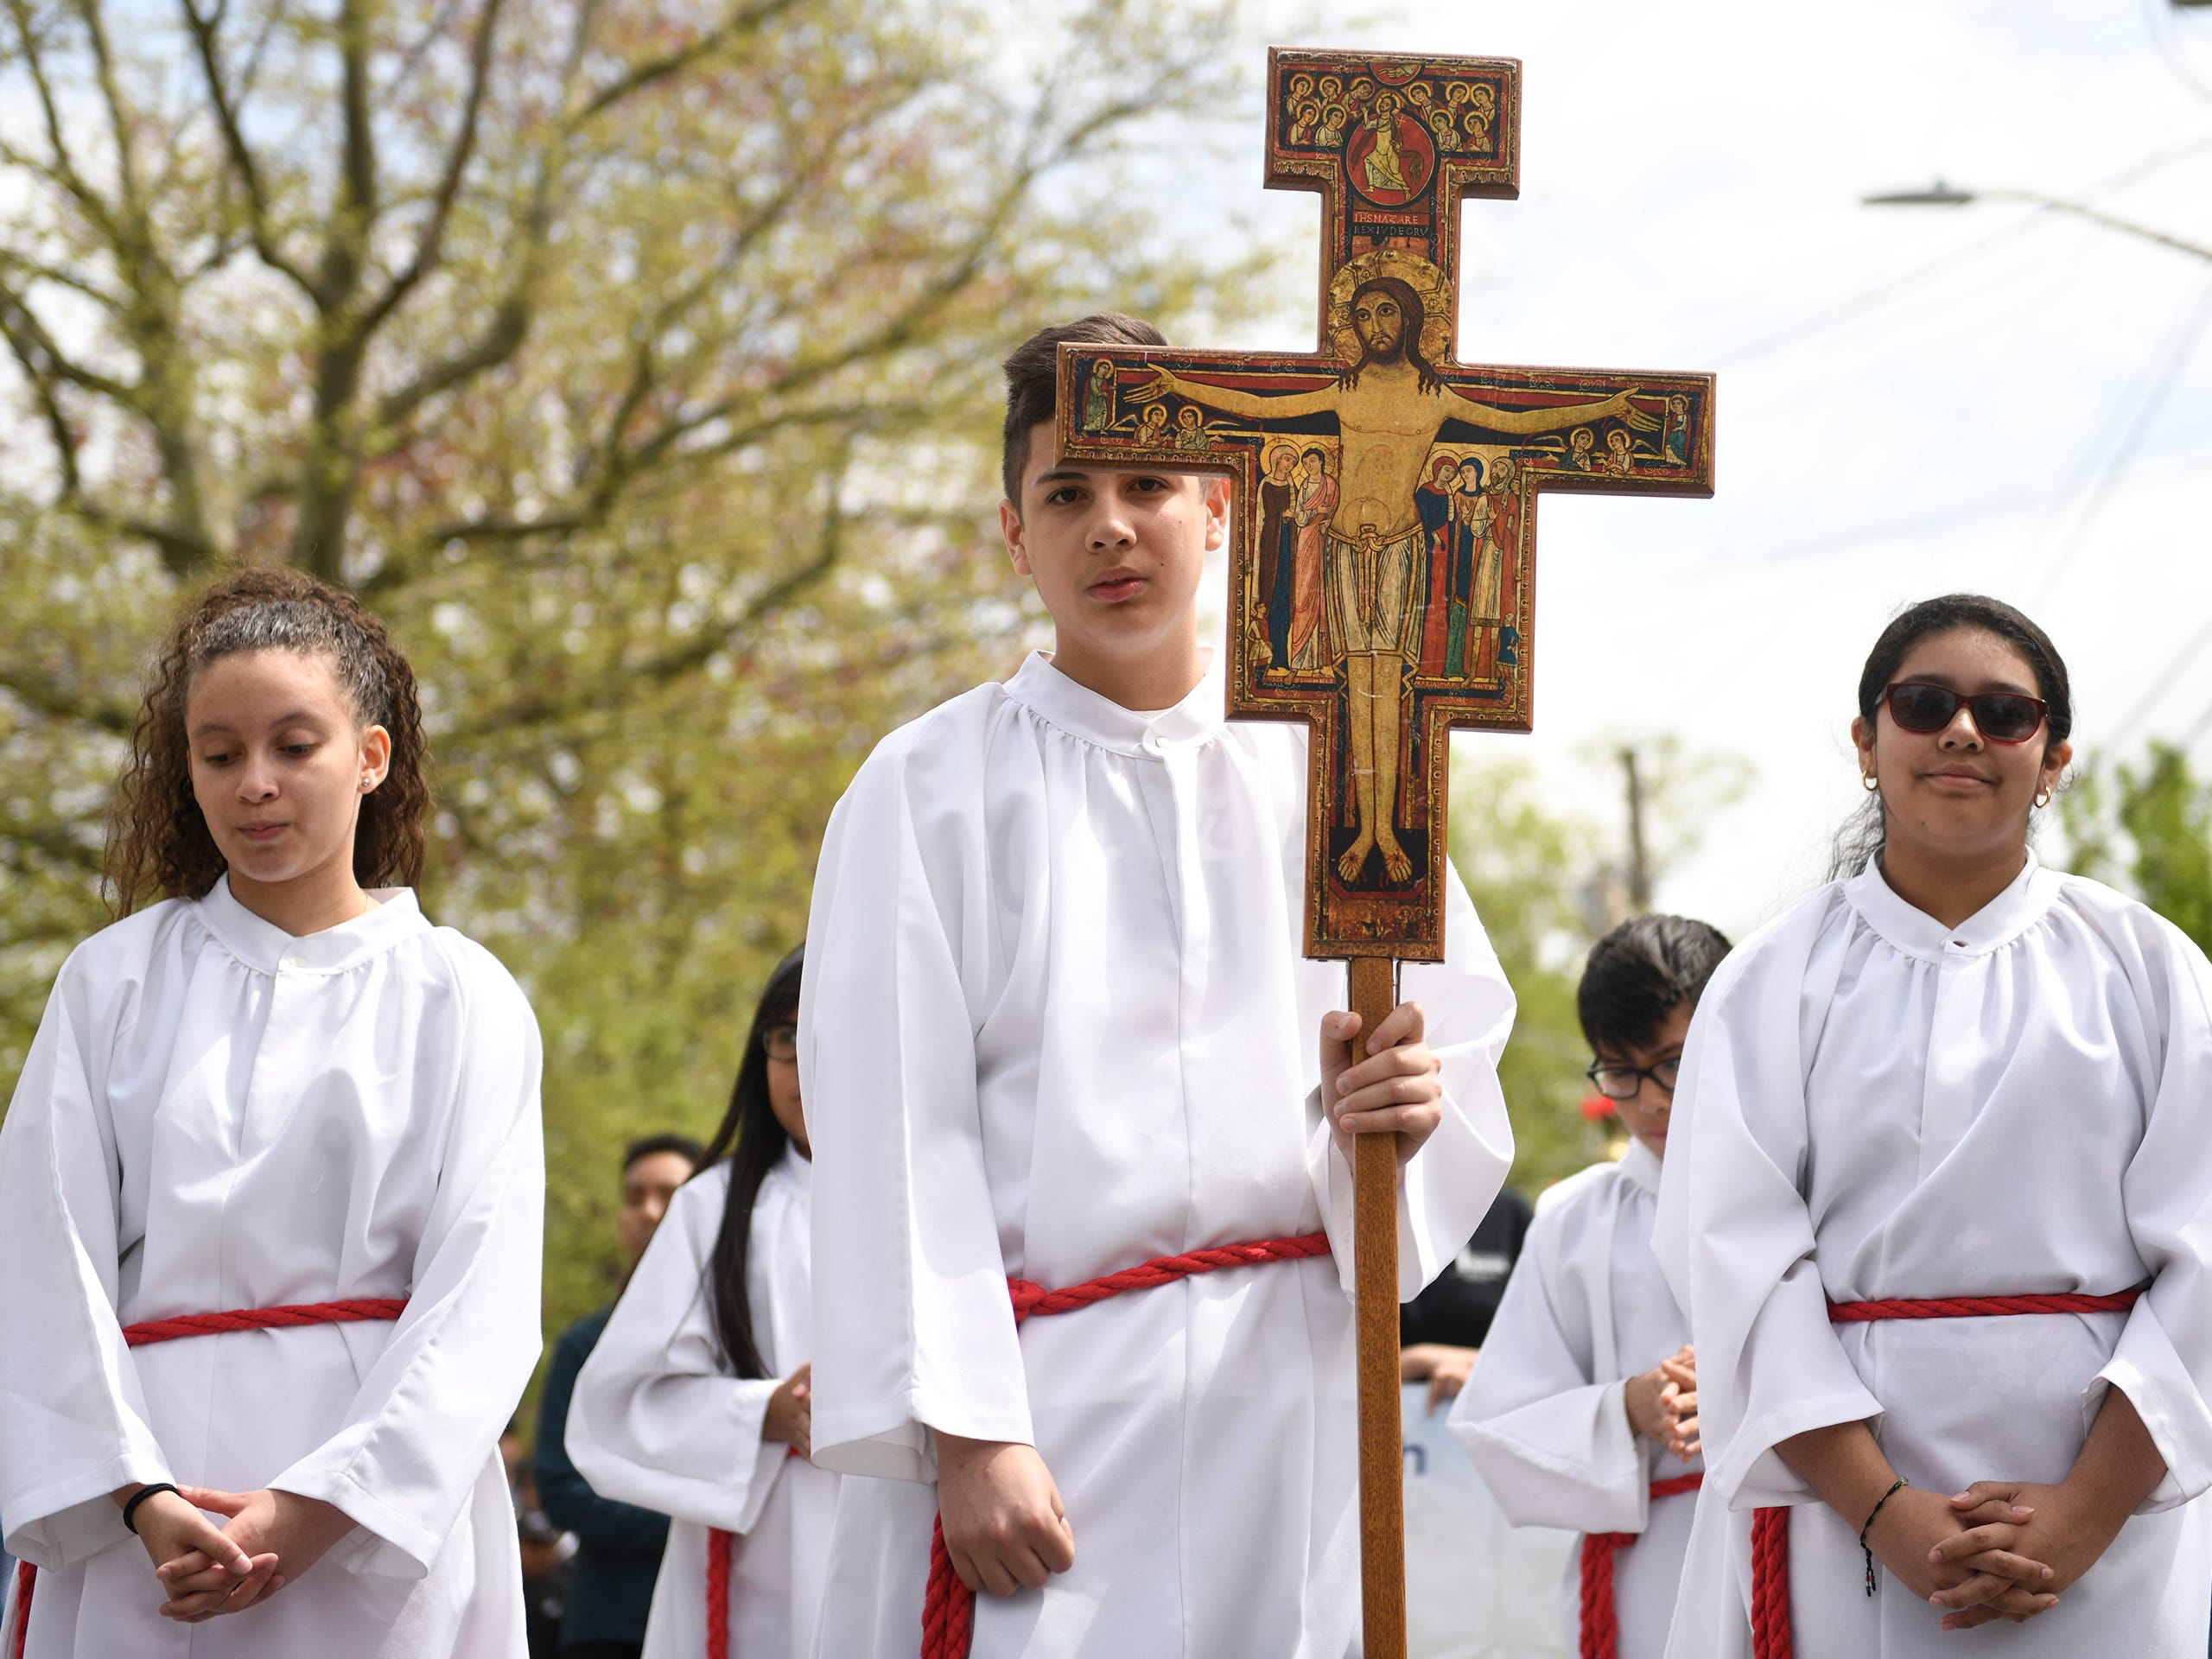 Betzalis DeLaCruz, Angel Munier and Donna Salazar participated in leading the Good Friday procession down Almond Street on Friday, April 19.